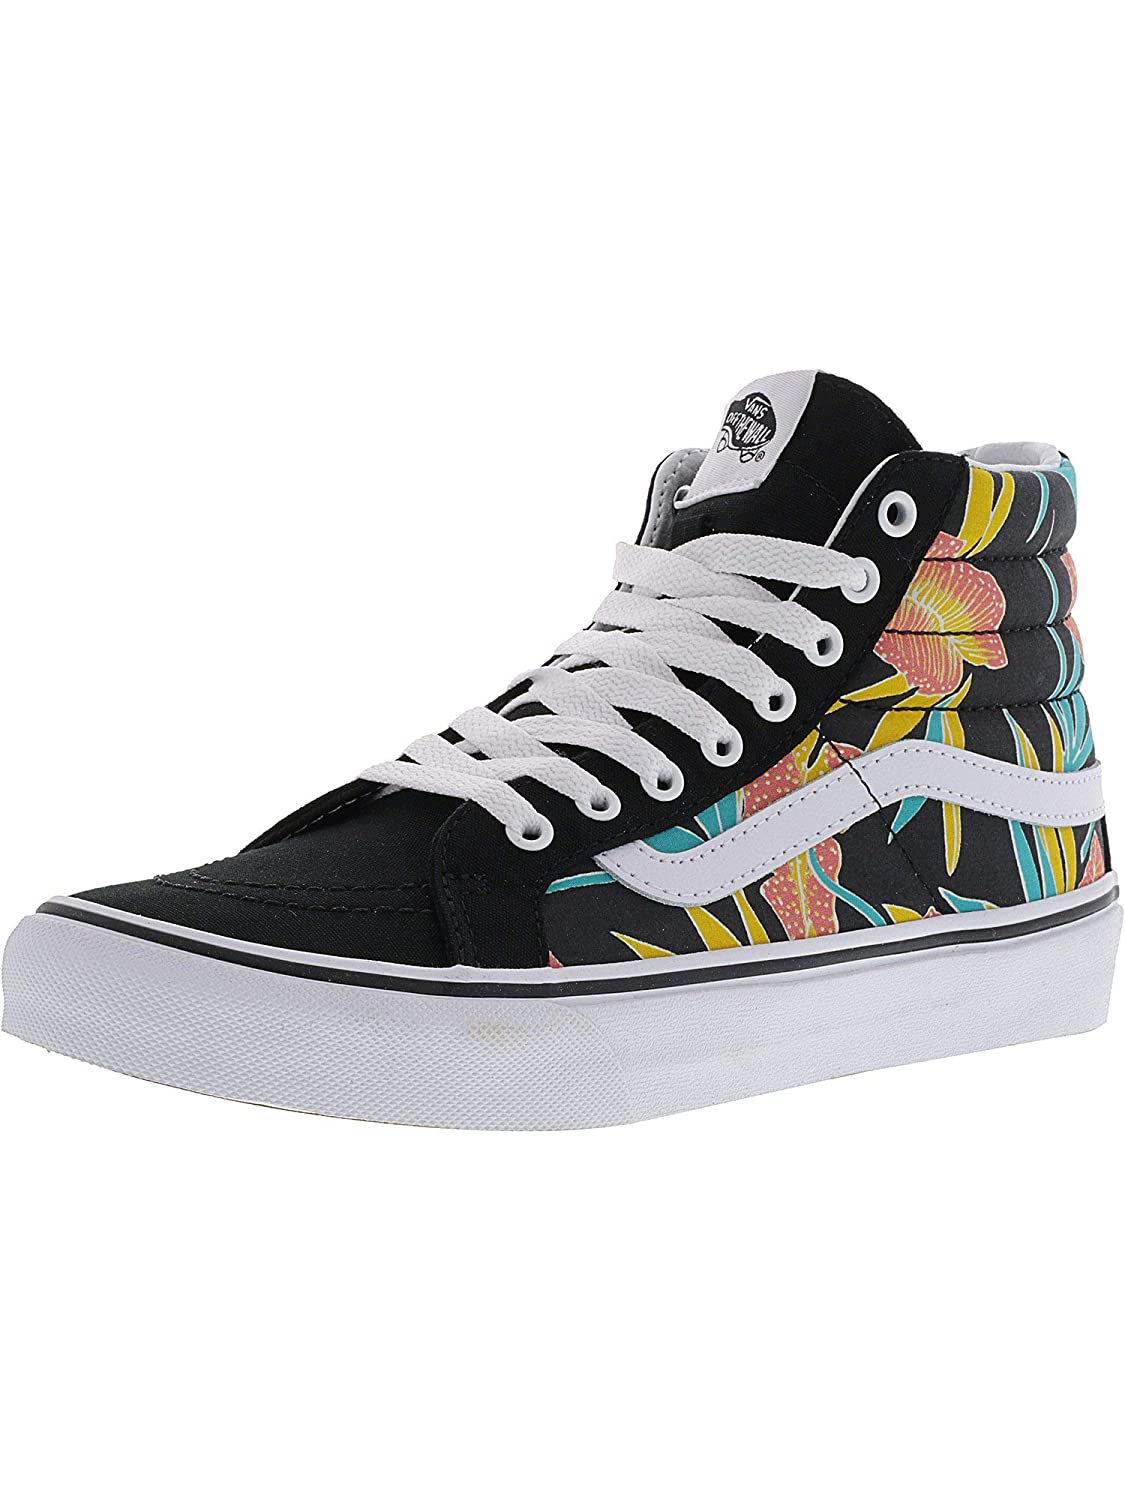 Vans Sk8 Hi Slim Tropical Leaves High Top Canvas Skateboarding Shoe